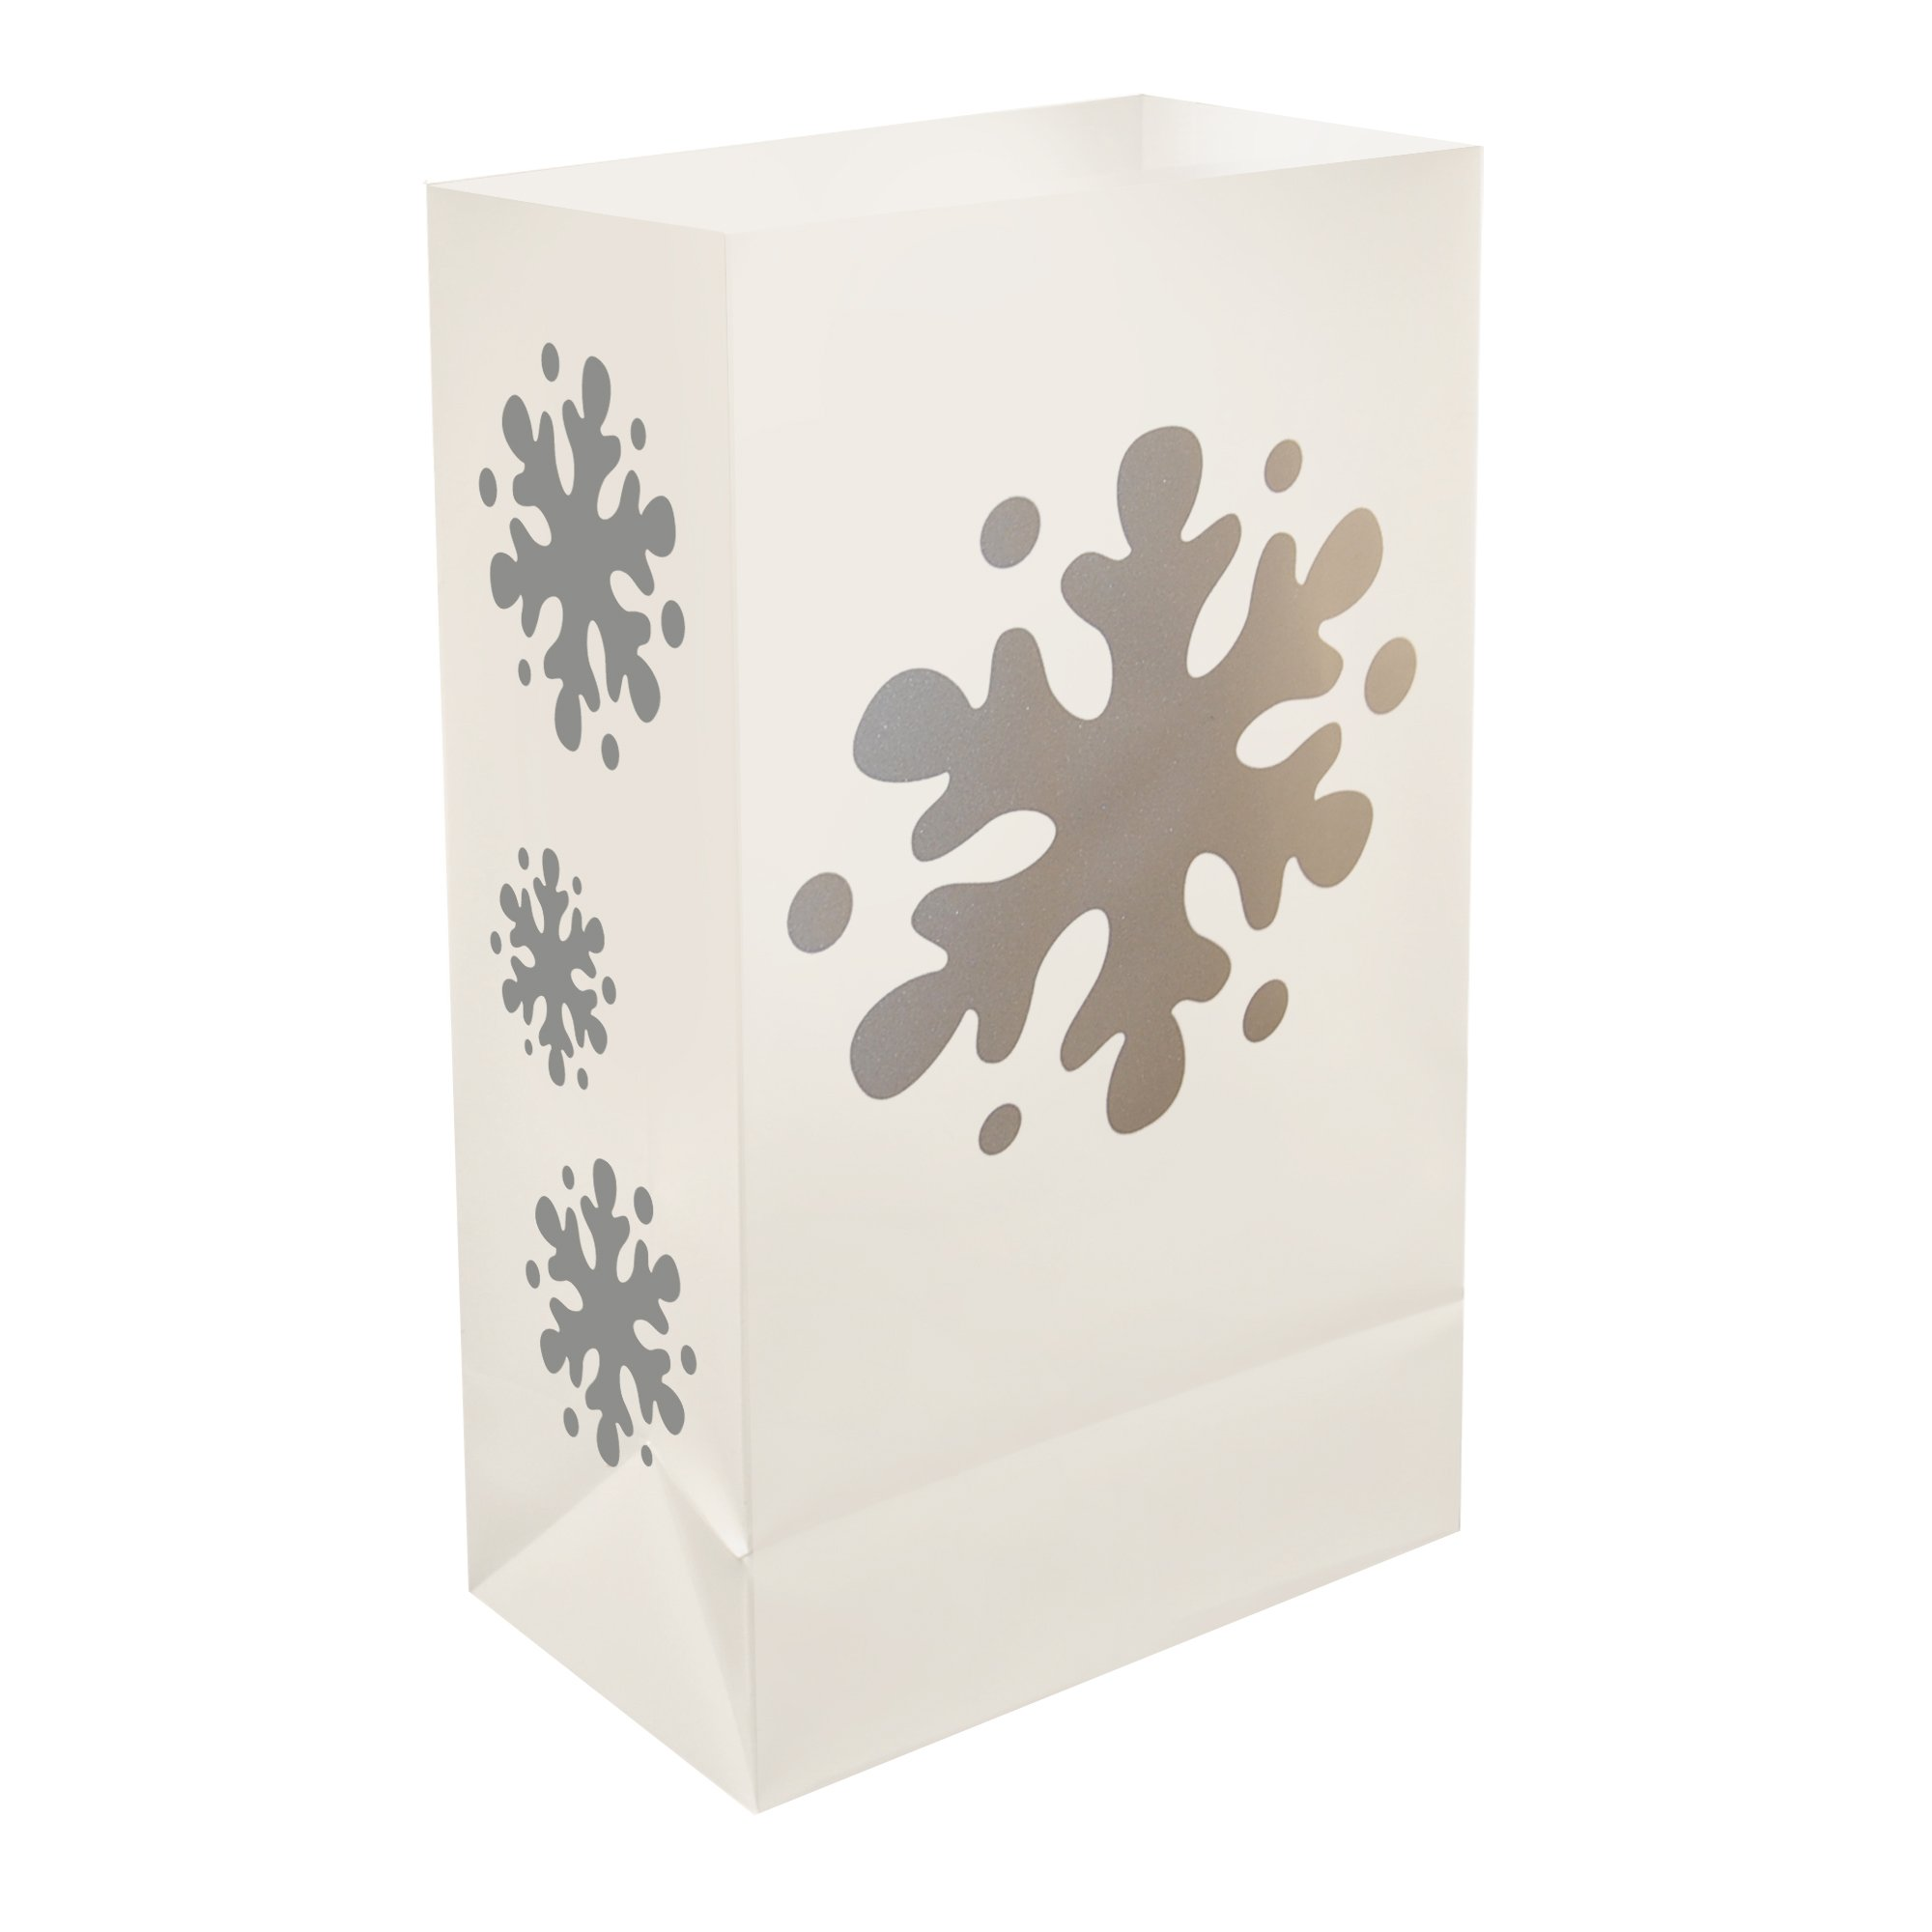 Lumabase 50412 12 Count Snowflake Plastic Luminaria Bags by Lumabase